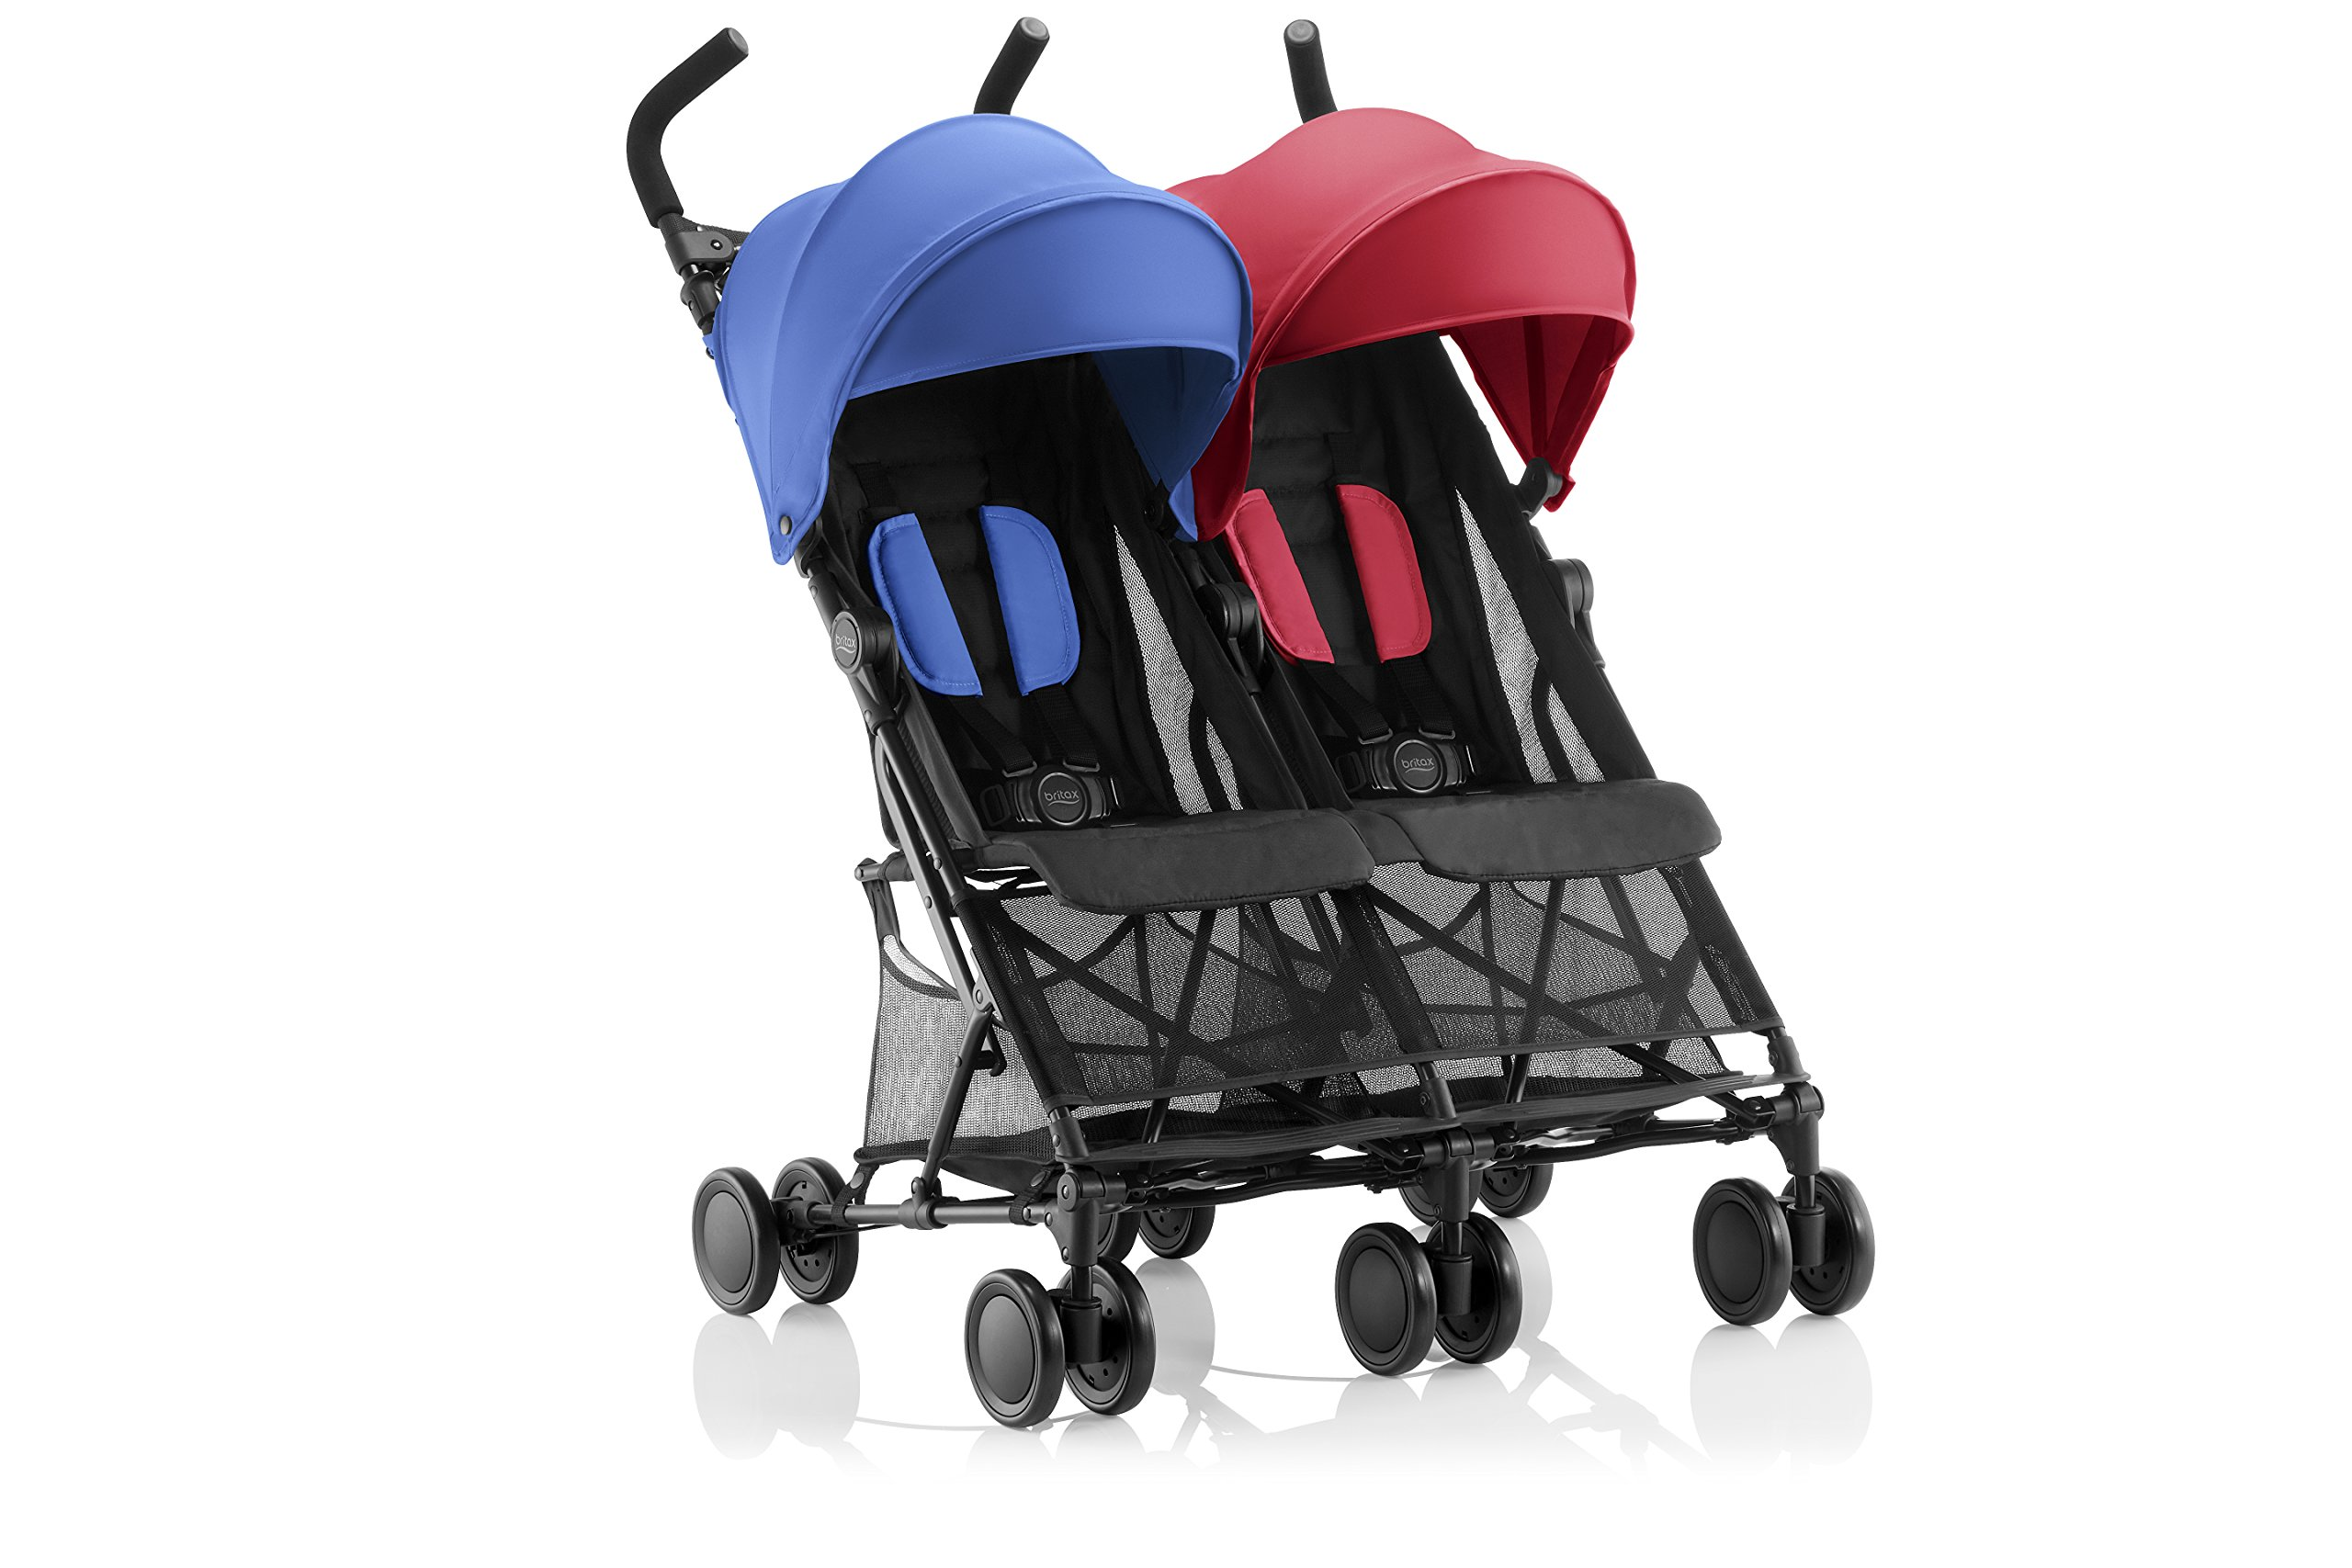 Britax Römer HOLIDAY DOUBLE Pushchair (6 months - 15 kg|3 years ) - Red/Blue  Reclining backrest - you can make your child's journey even more convenient with the reclining backrest. the backrest can be reclined independently which gives you the flexibility to provide a relaxing sleeping position for each child individually. Seat unit with mesh panels - to keep your child comfortable on hot days, the seat unit has mesh panels on the sides and top of the seat unit for better air circulation. Large hood with sun visor - when taking a nice relaxing stroll in the sun, the large hoods with sun visor are independently adjustable and provide protective shade to your little passenger. 3